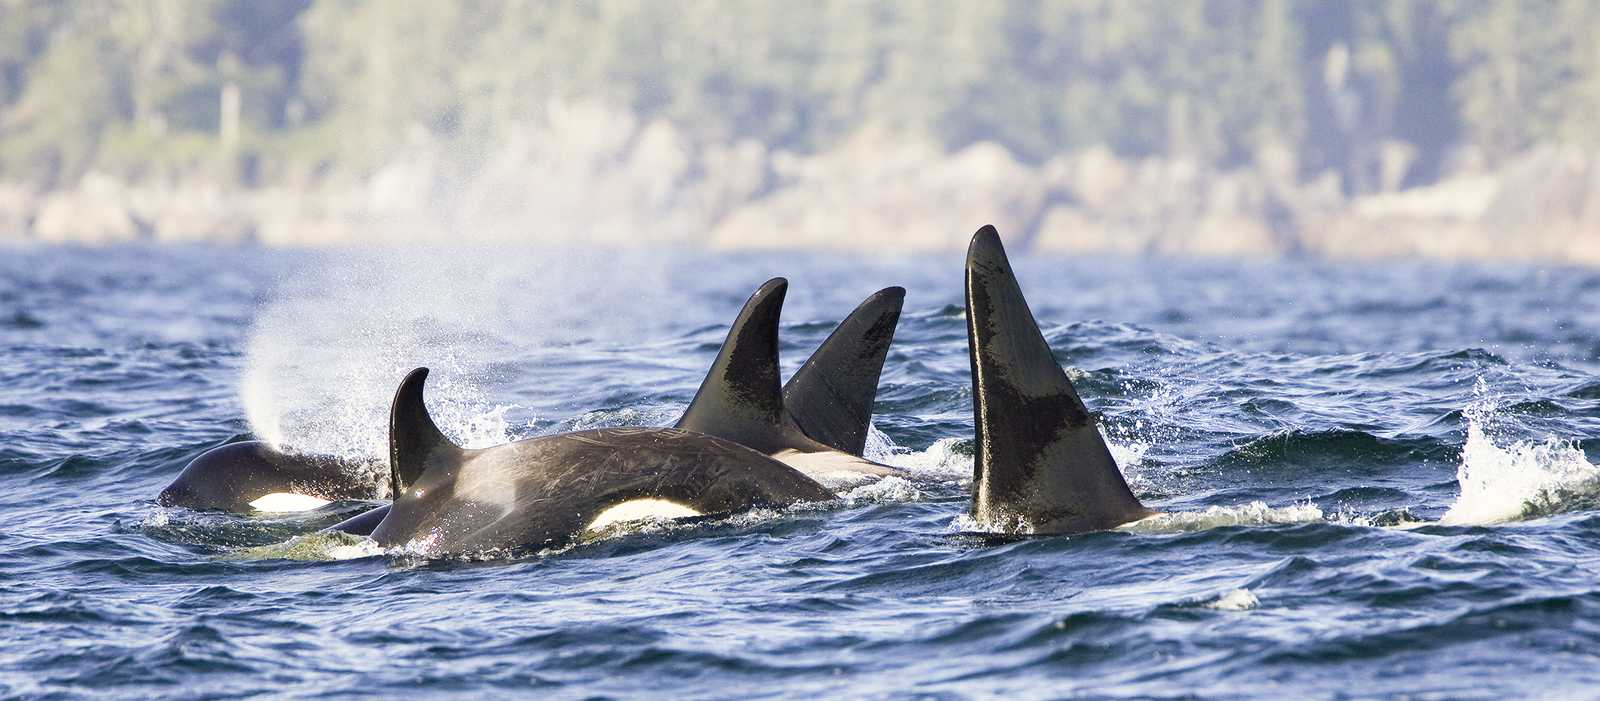 Whale and Bear Watching Tour in Tofino, Kanada